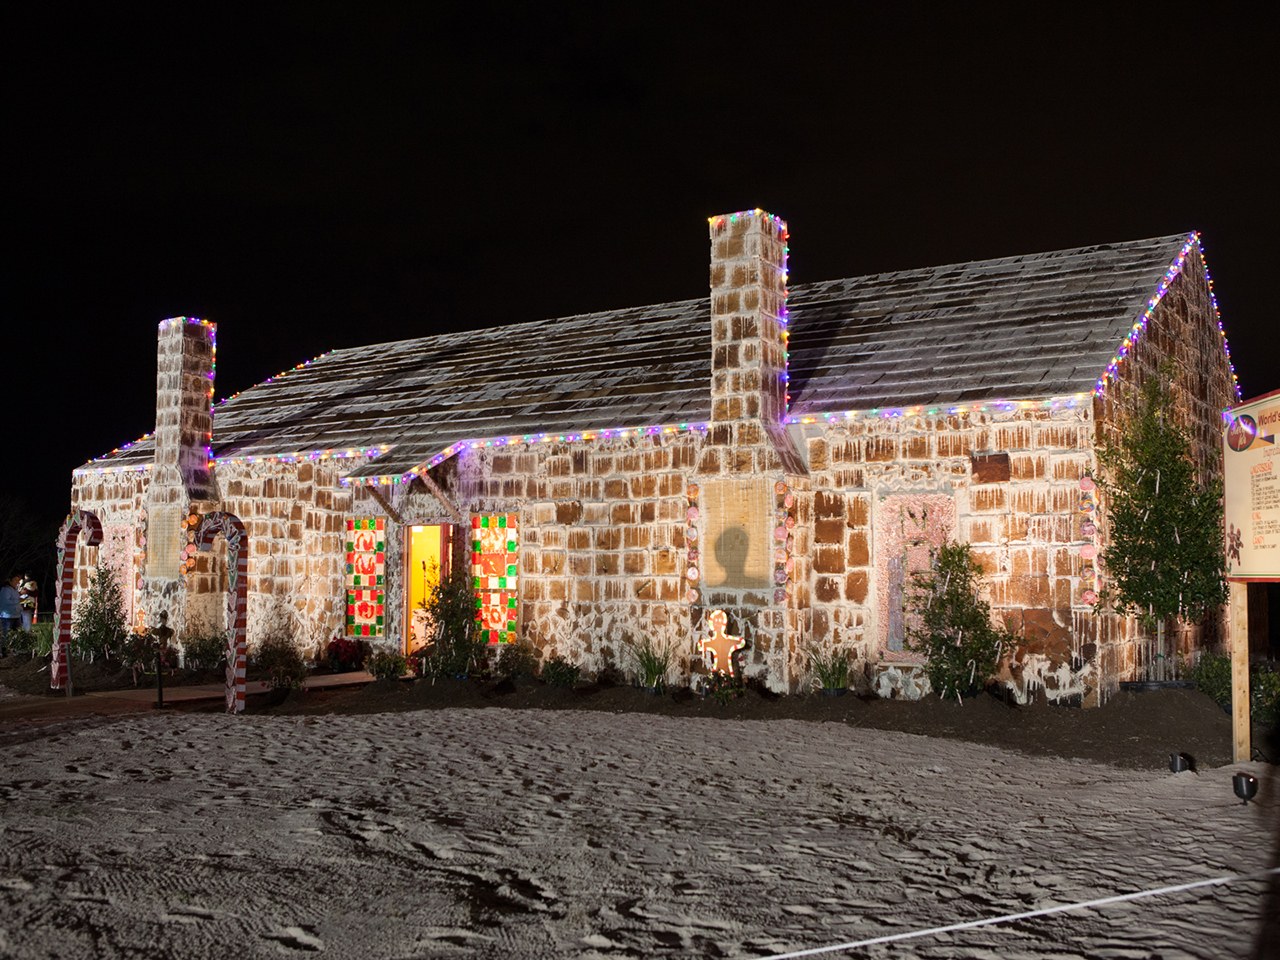 worlds largest gingerbread house raises money for hospital todaycom - Biggest House In The World 2013